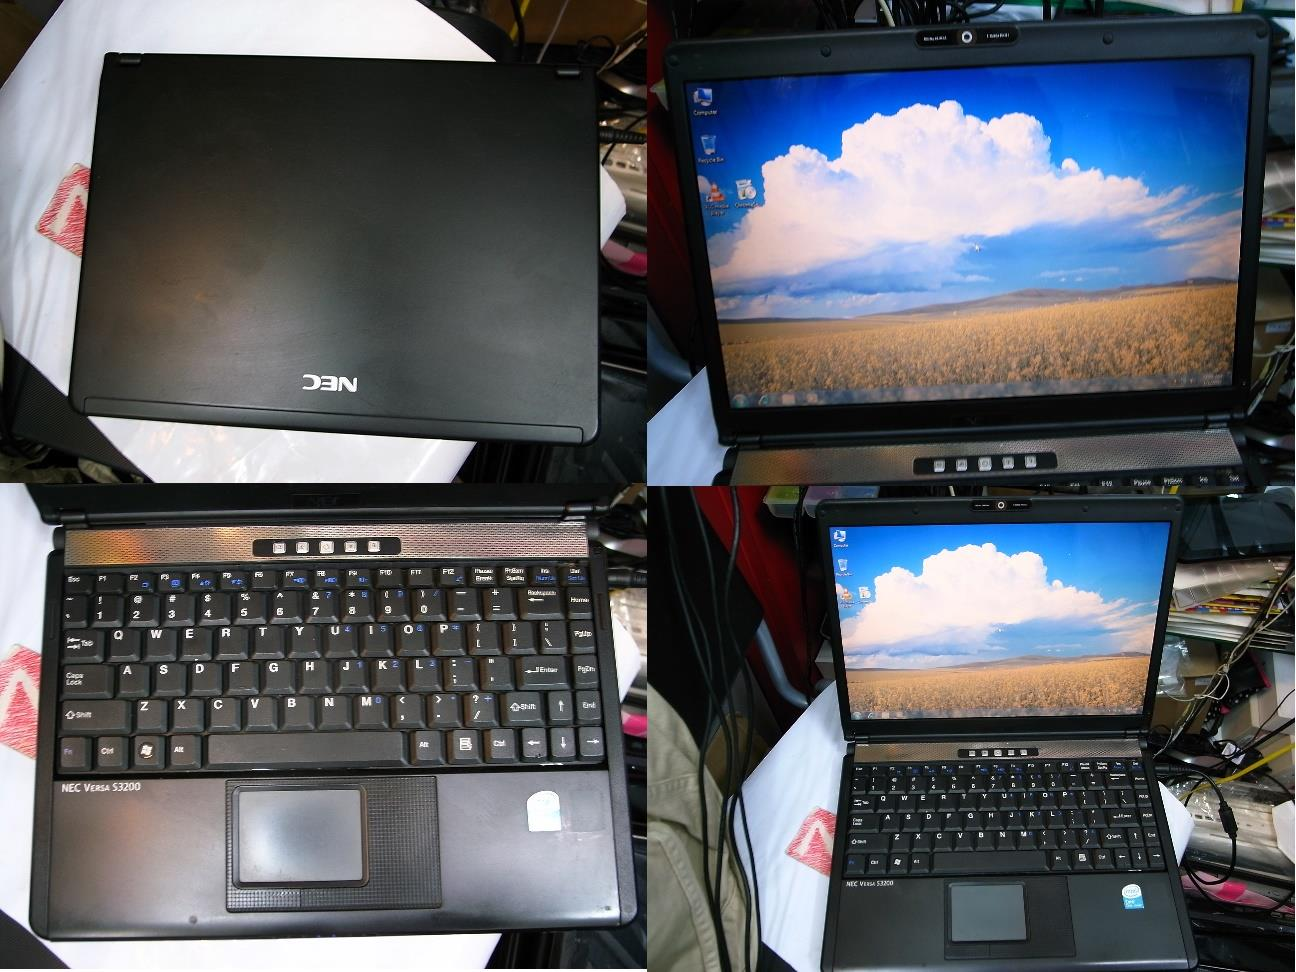 NEC Versa S3200 13 inci Camera DVD  Laptop Notebook Rm430